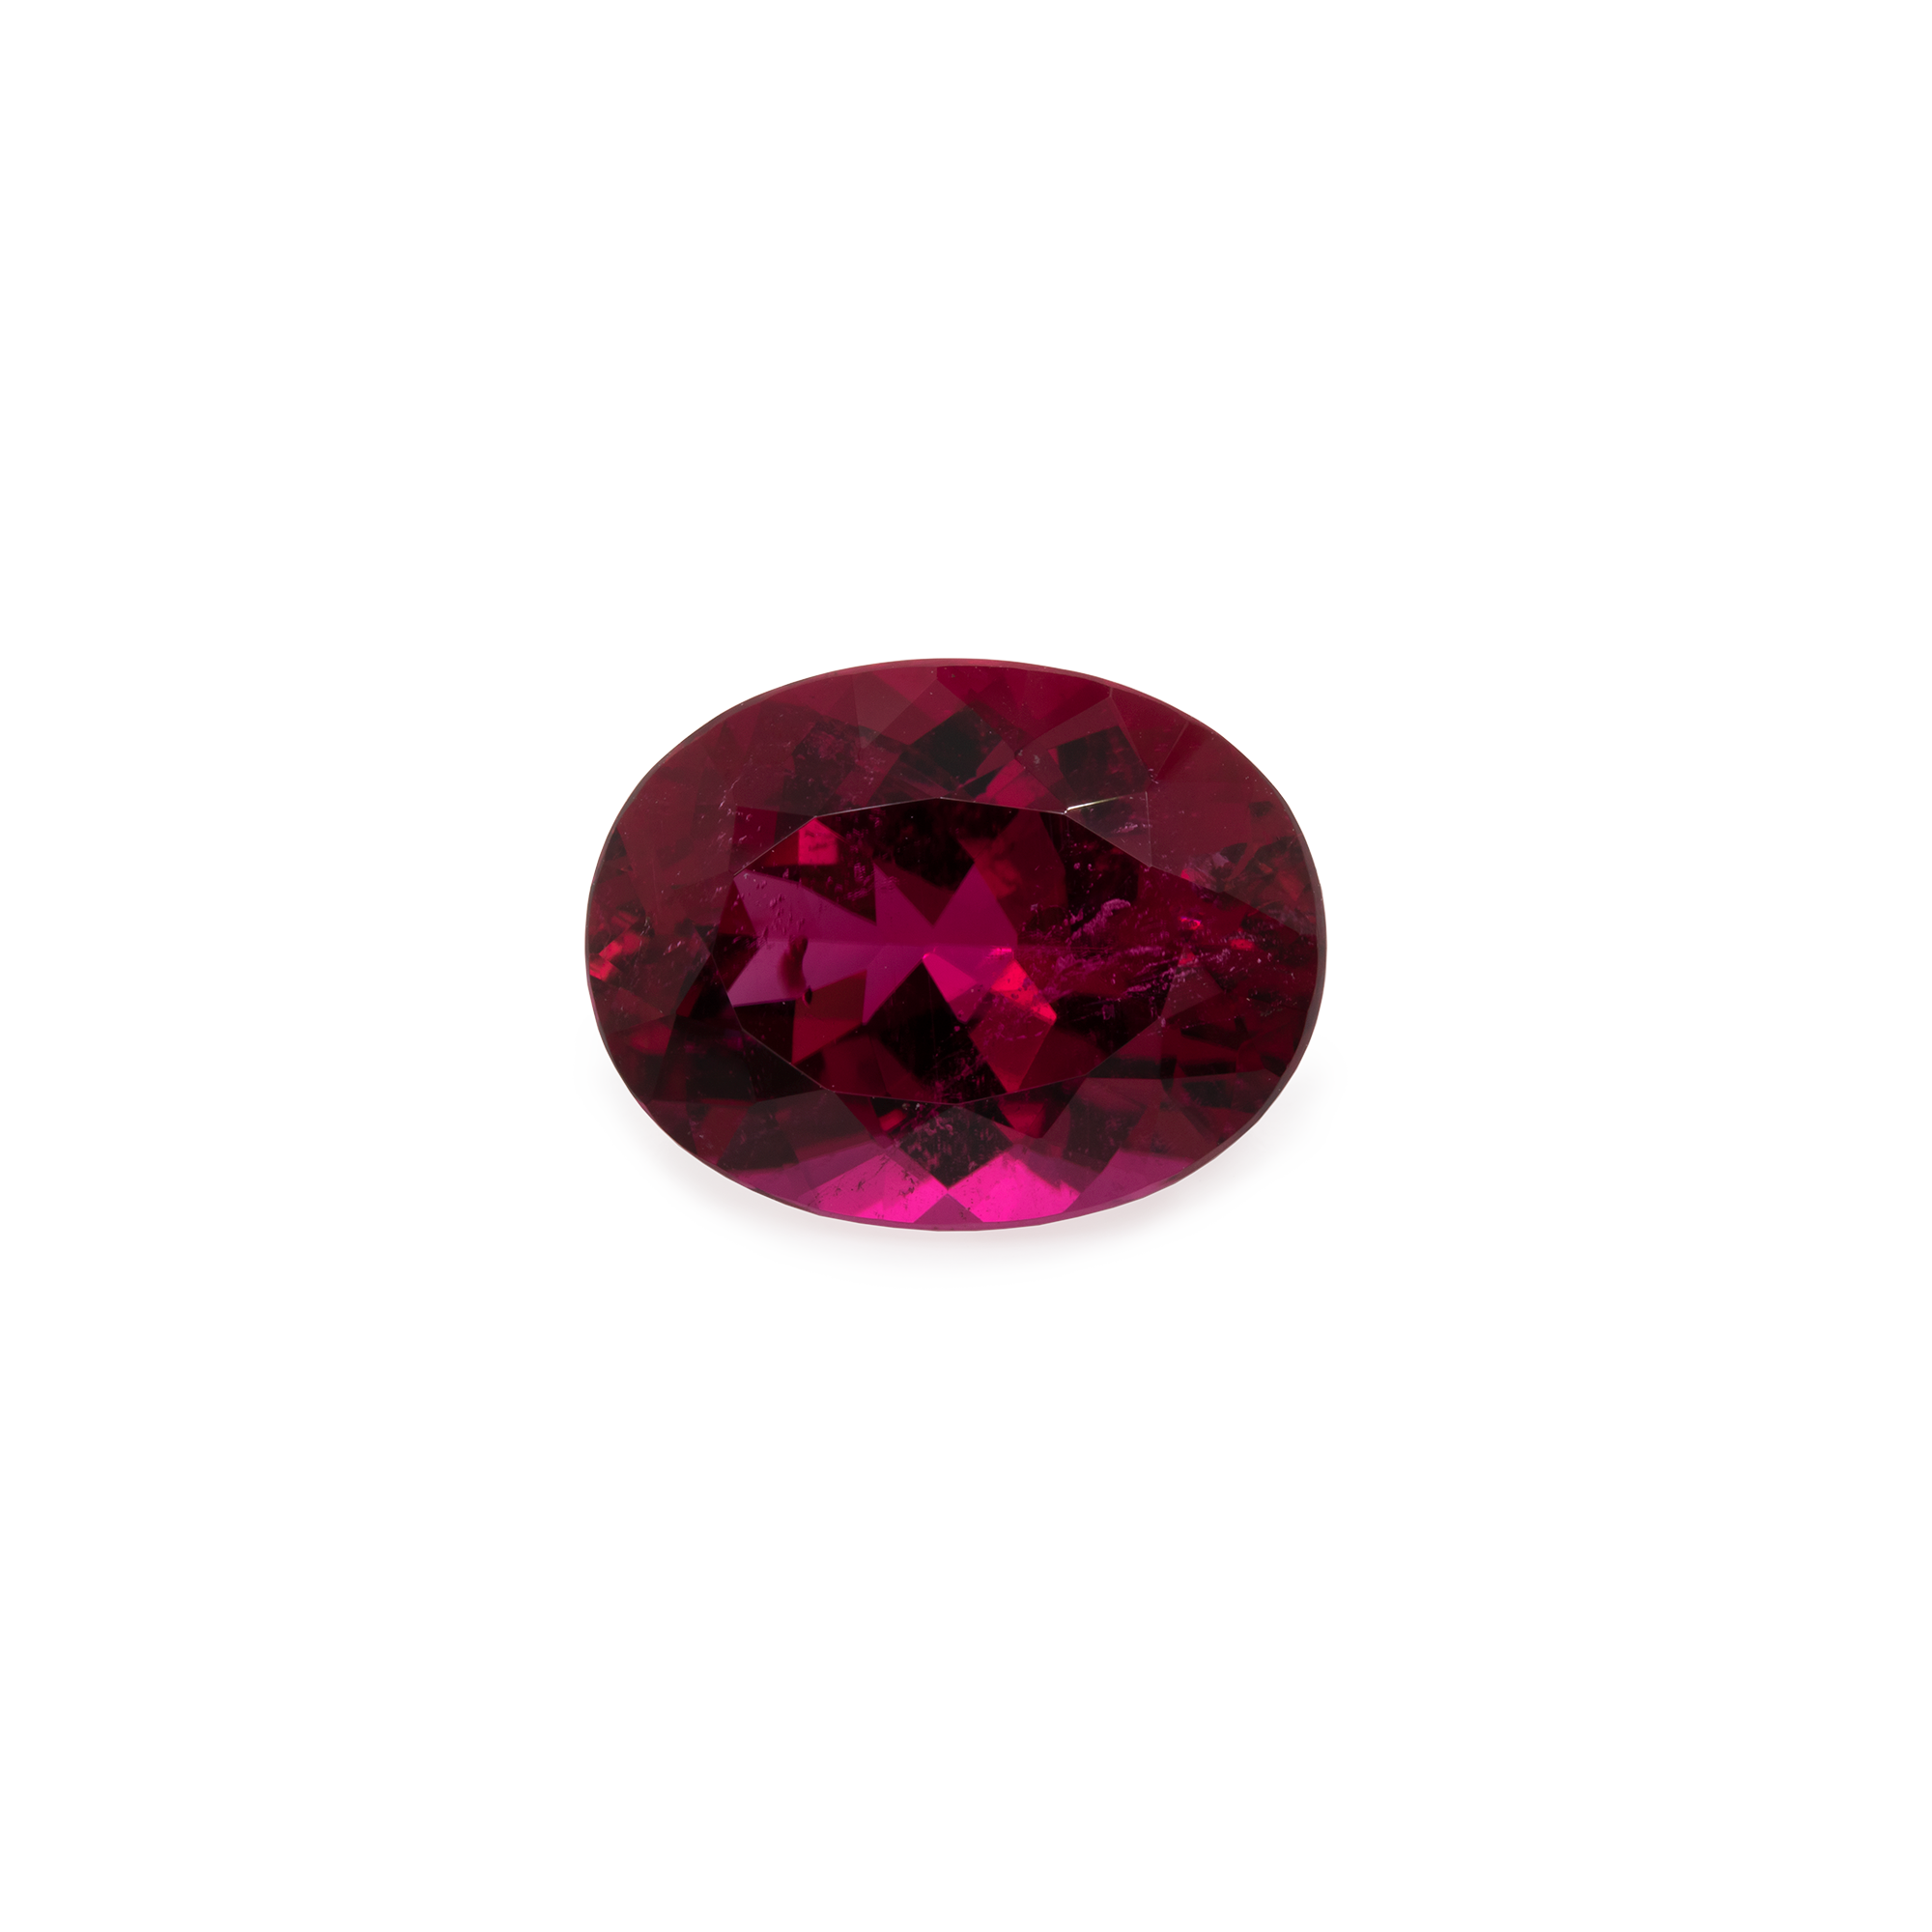 Rubellit - rot/pink, oval, 13,5x10,5x6 mm, 5,86 cts, Nr. RUB14001